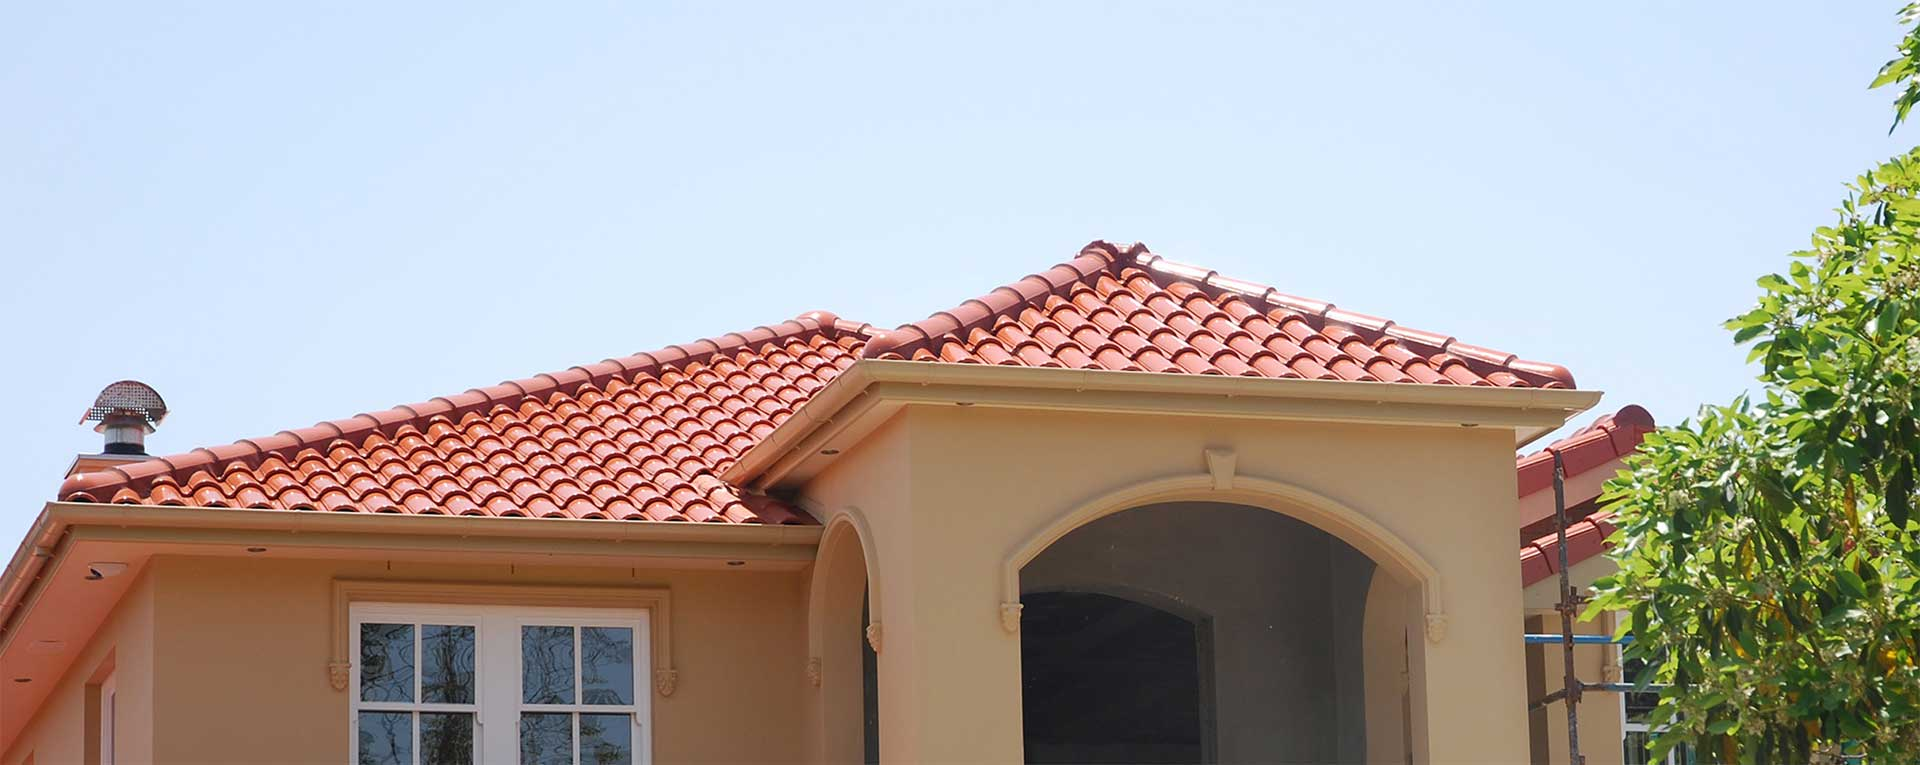 Red-tiles-roof